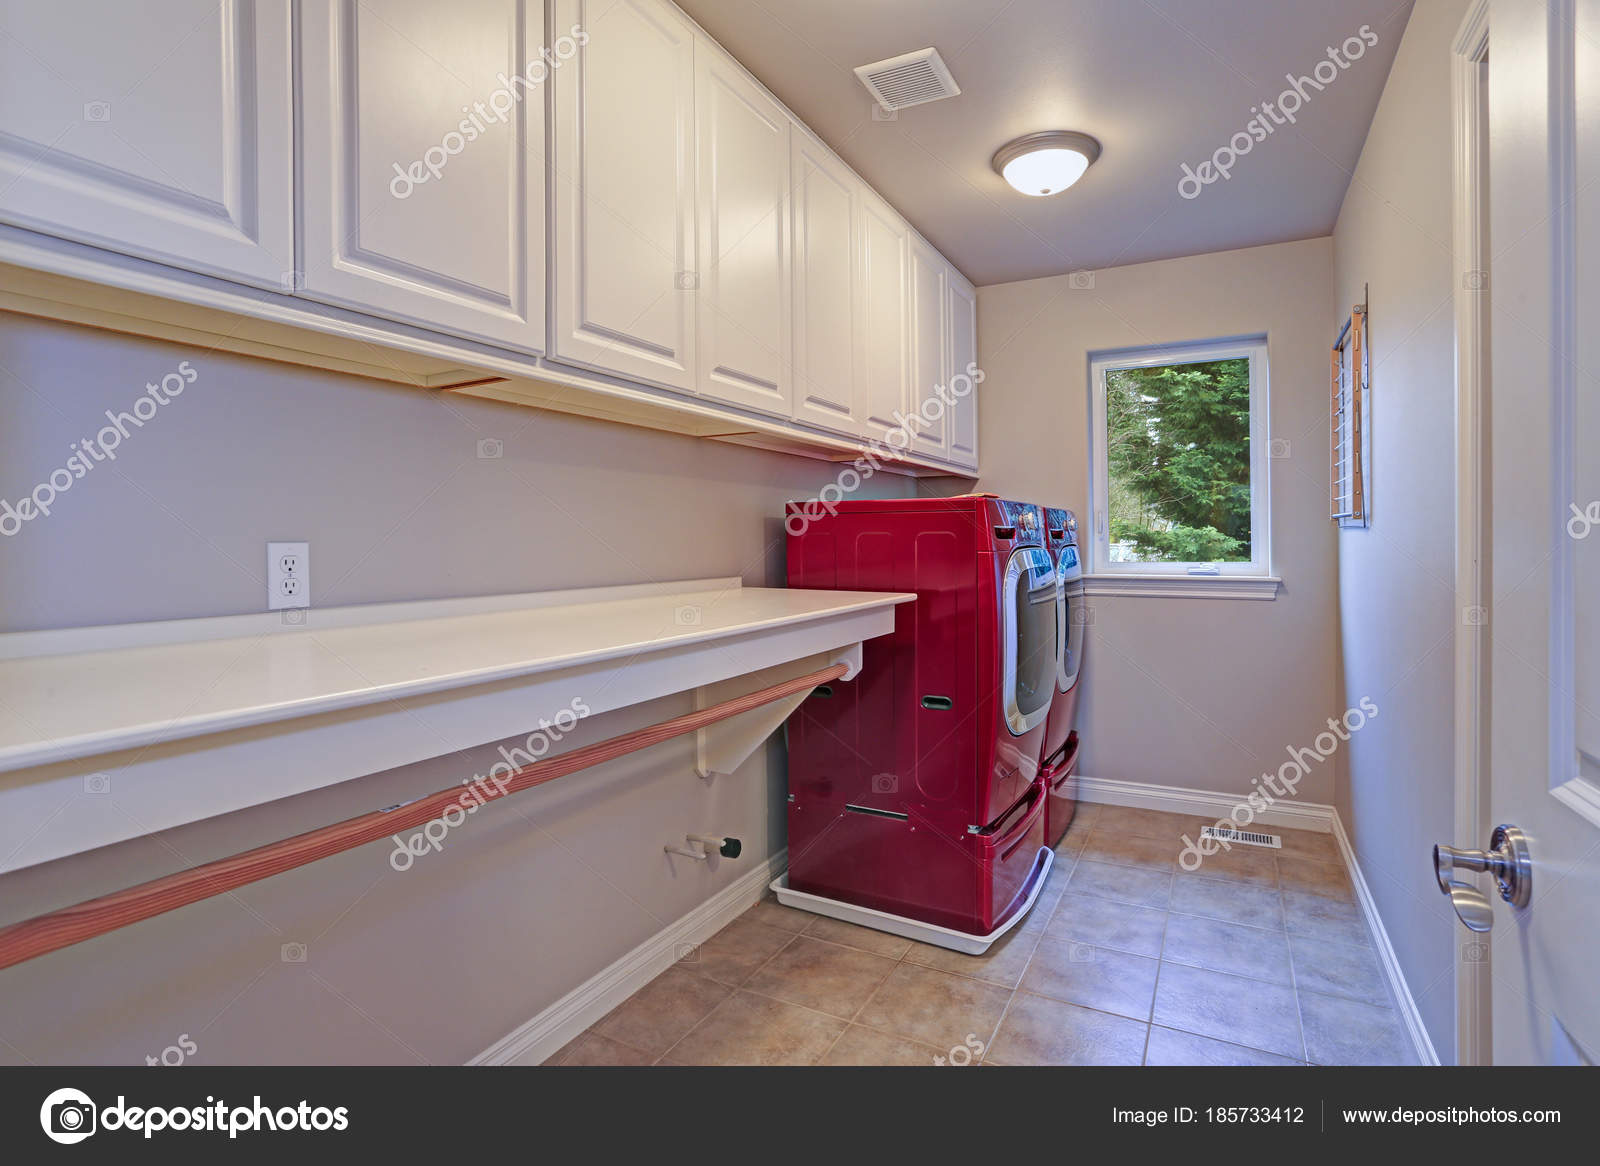 narrow home laundry with white cabinets and red accent laundry rh depositphotos com White Laundry Room Cabinets White Laundry Room